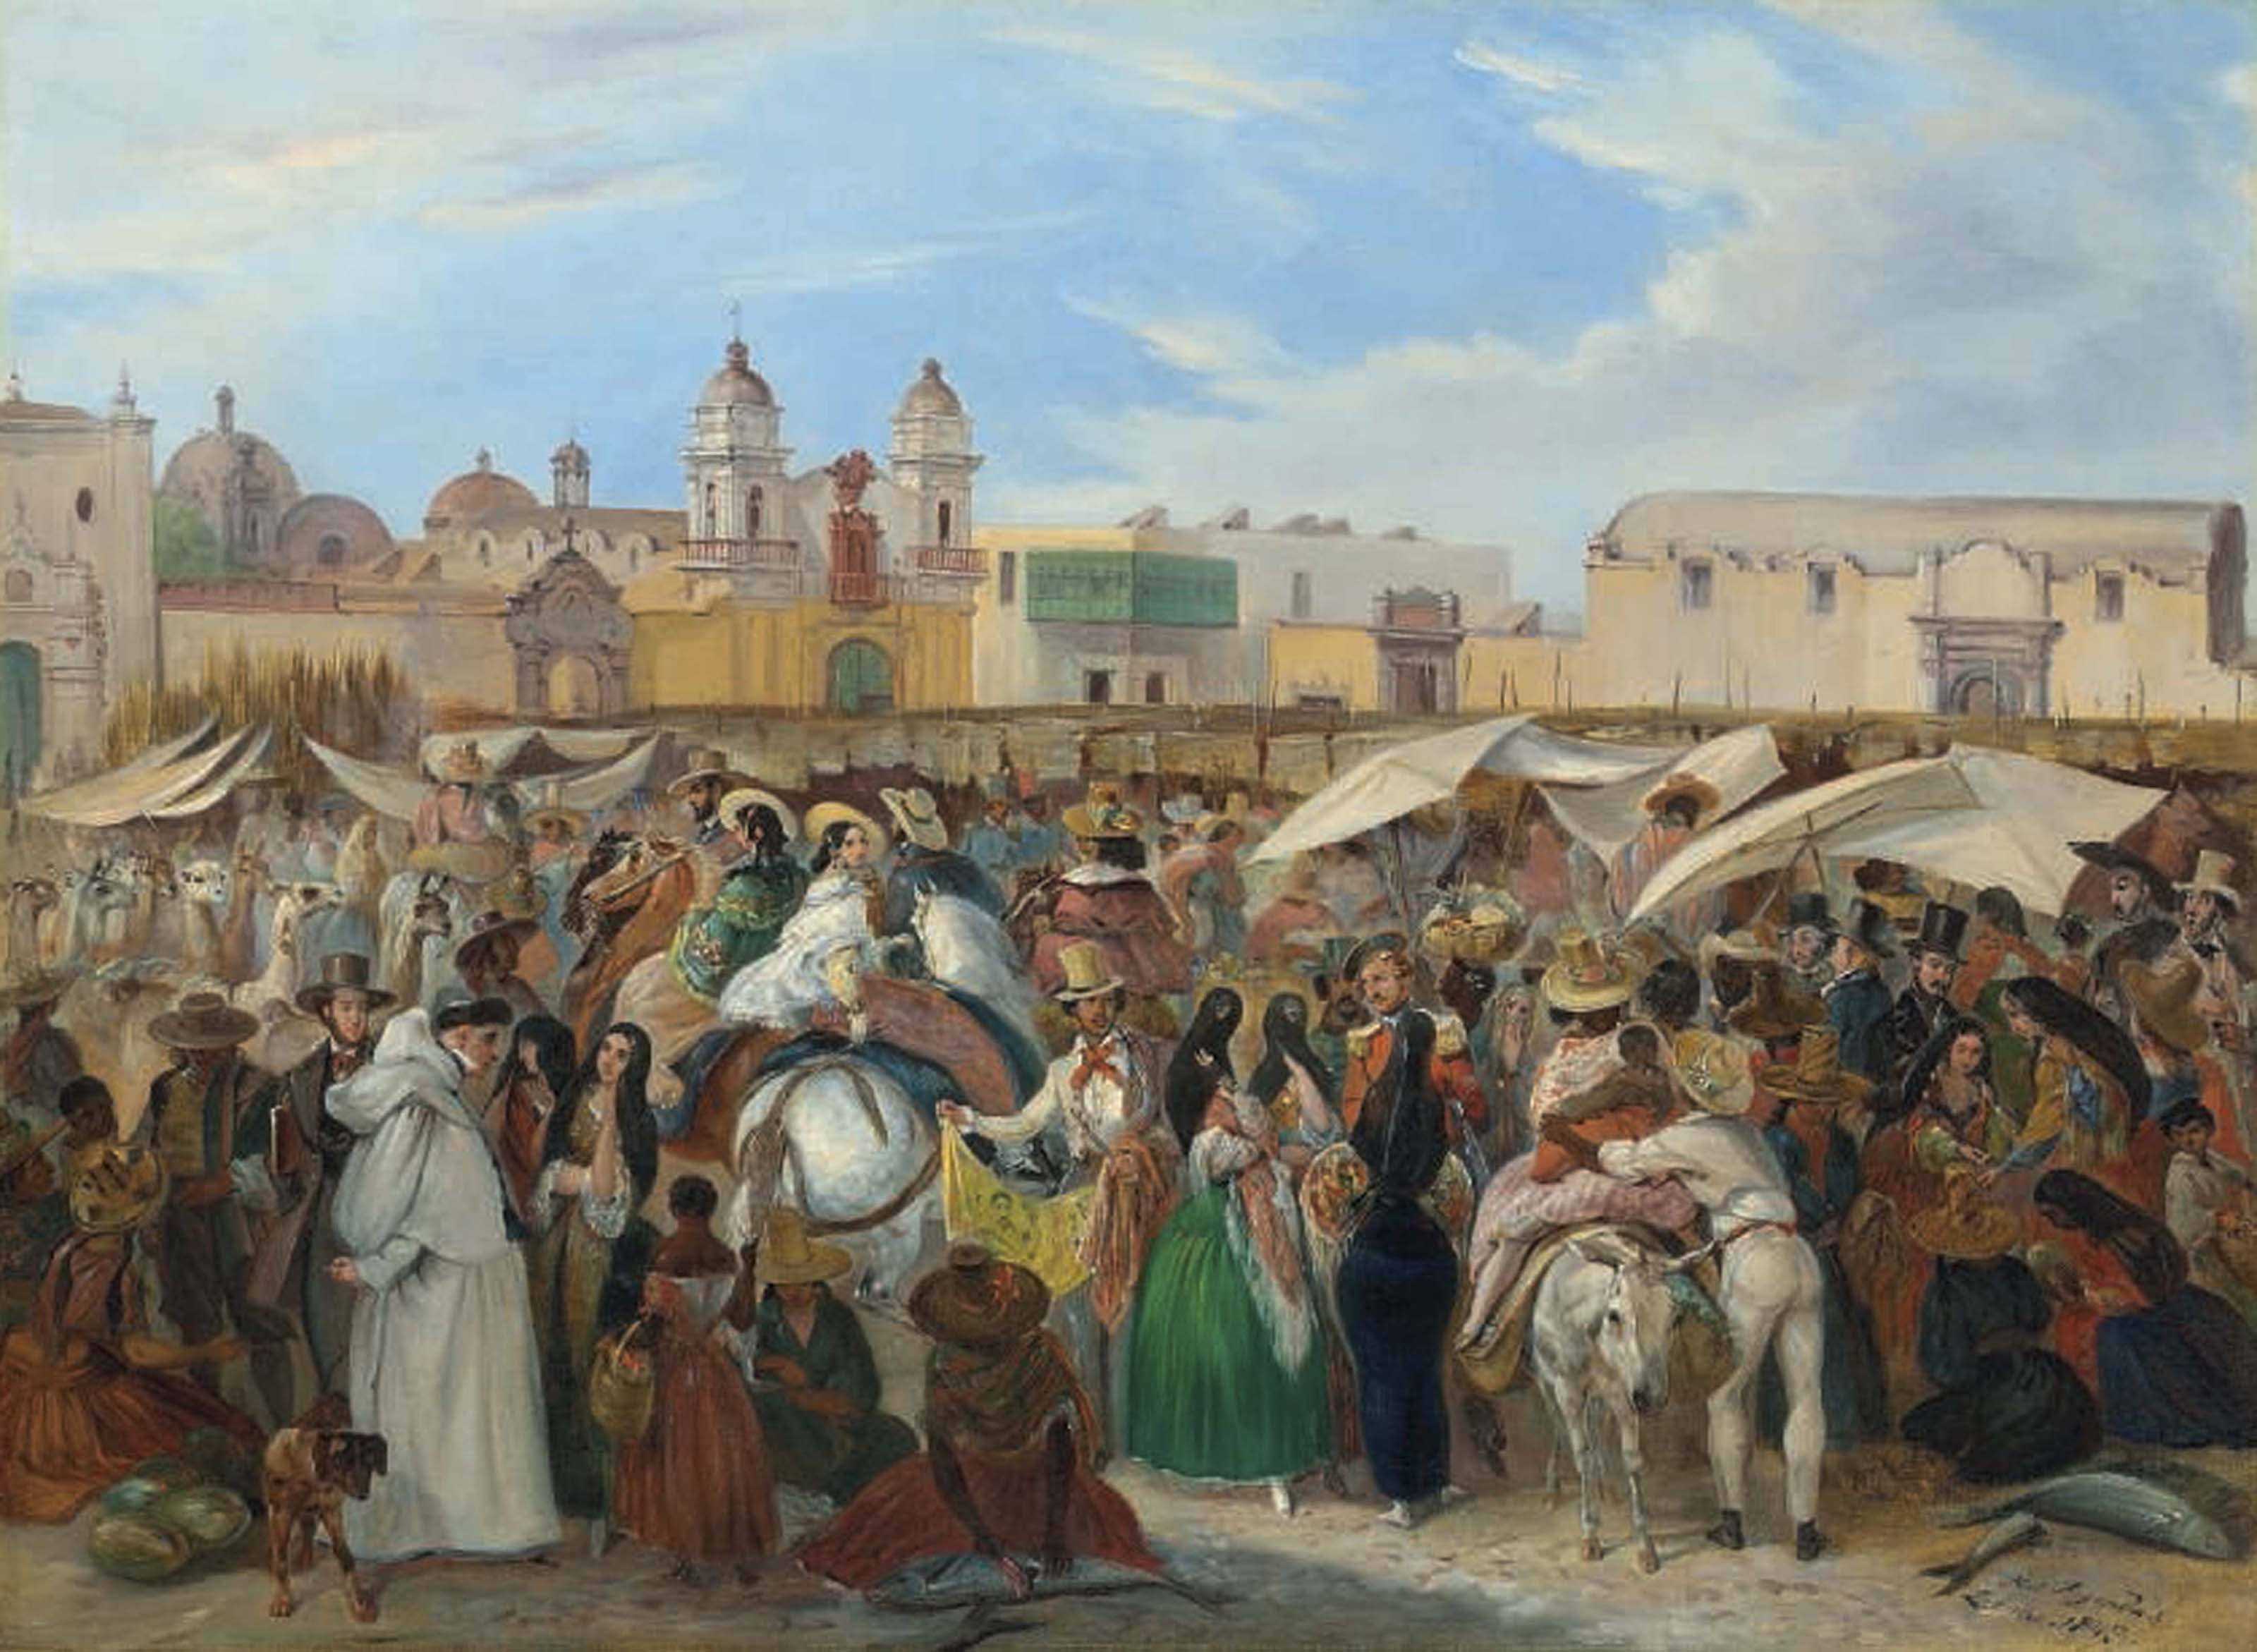 The Independencia market, Lima